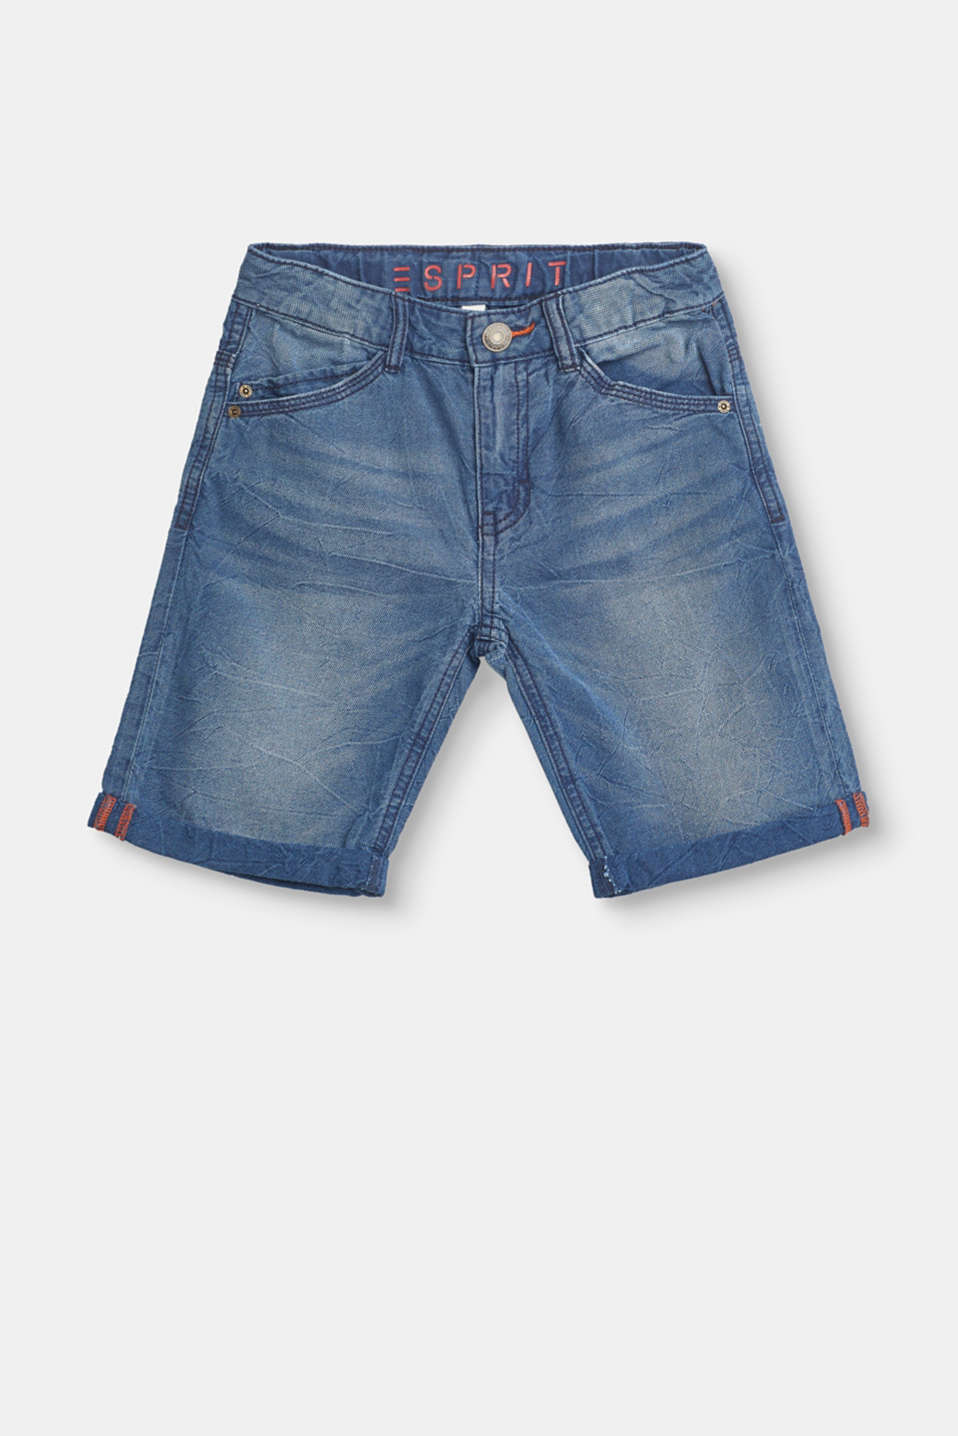 Esprit - Cotton shorts in a denim look with an adjustable waistband